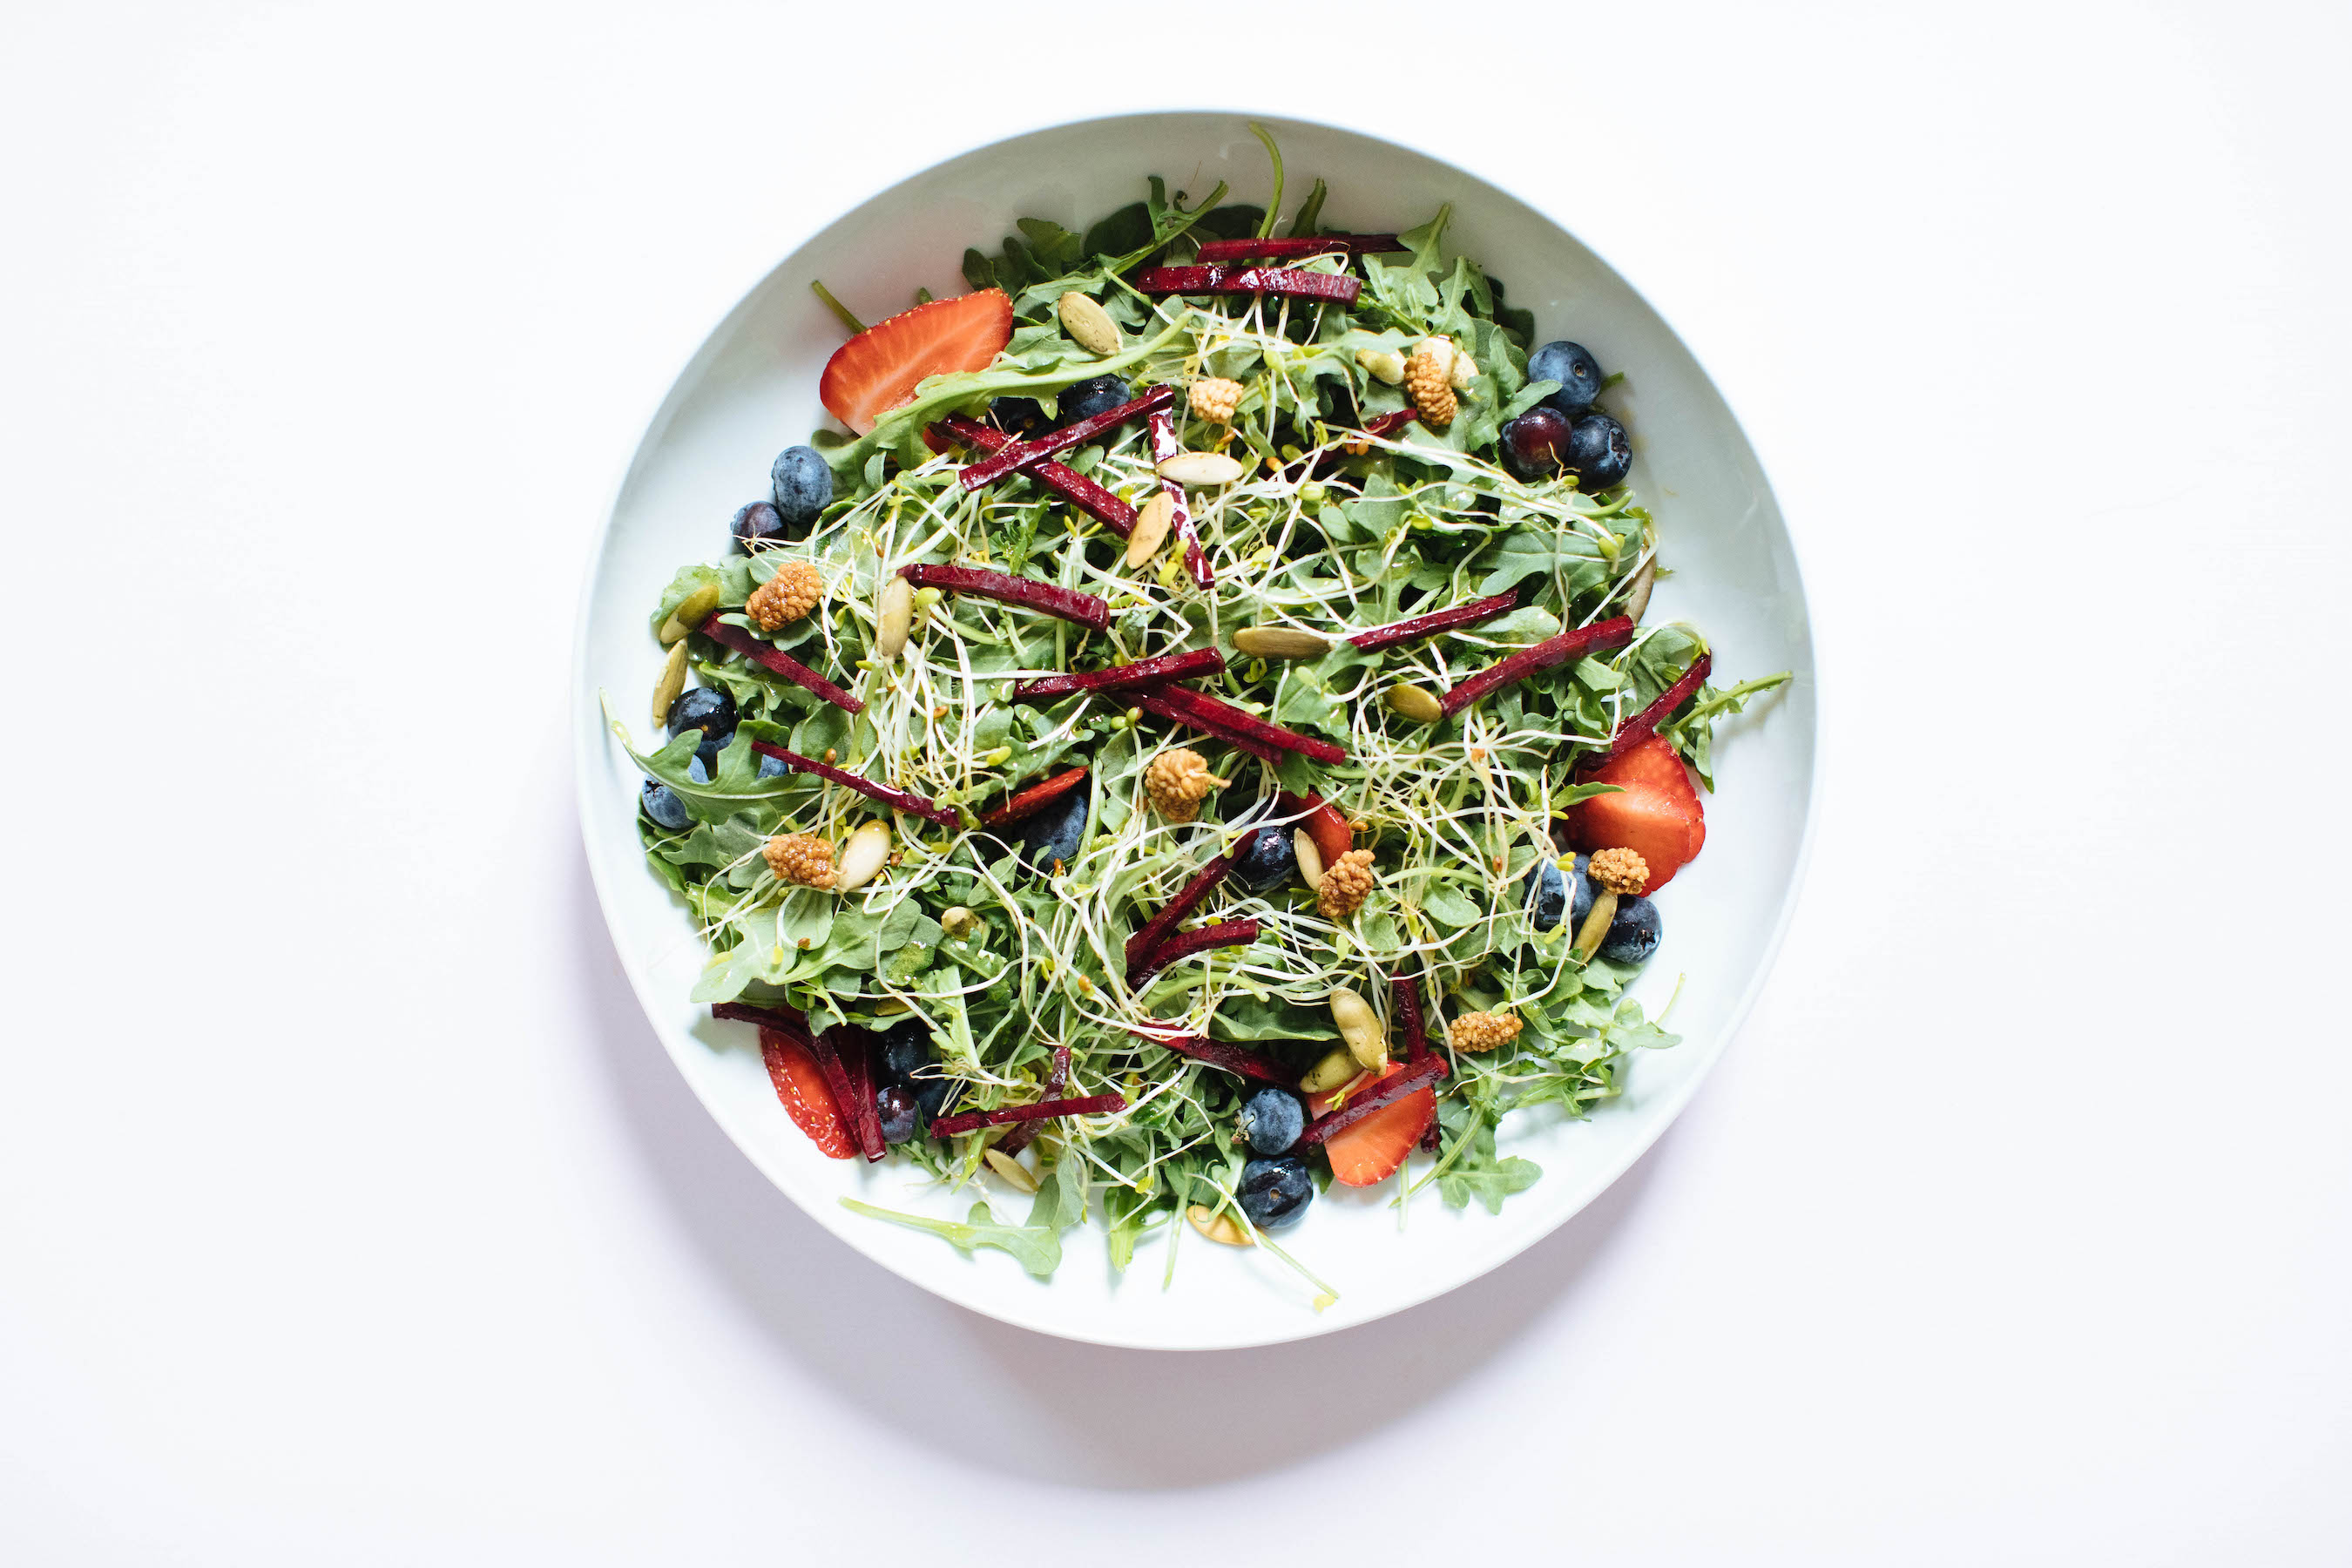 How To Make Any Salad Delicious | Nutrition Stripped